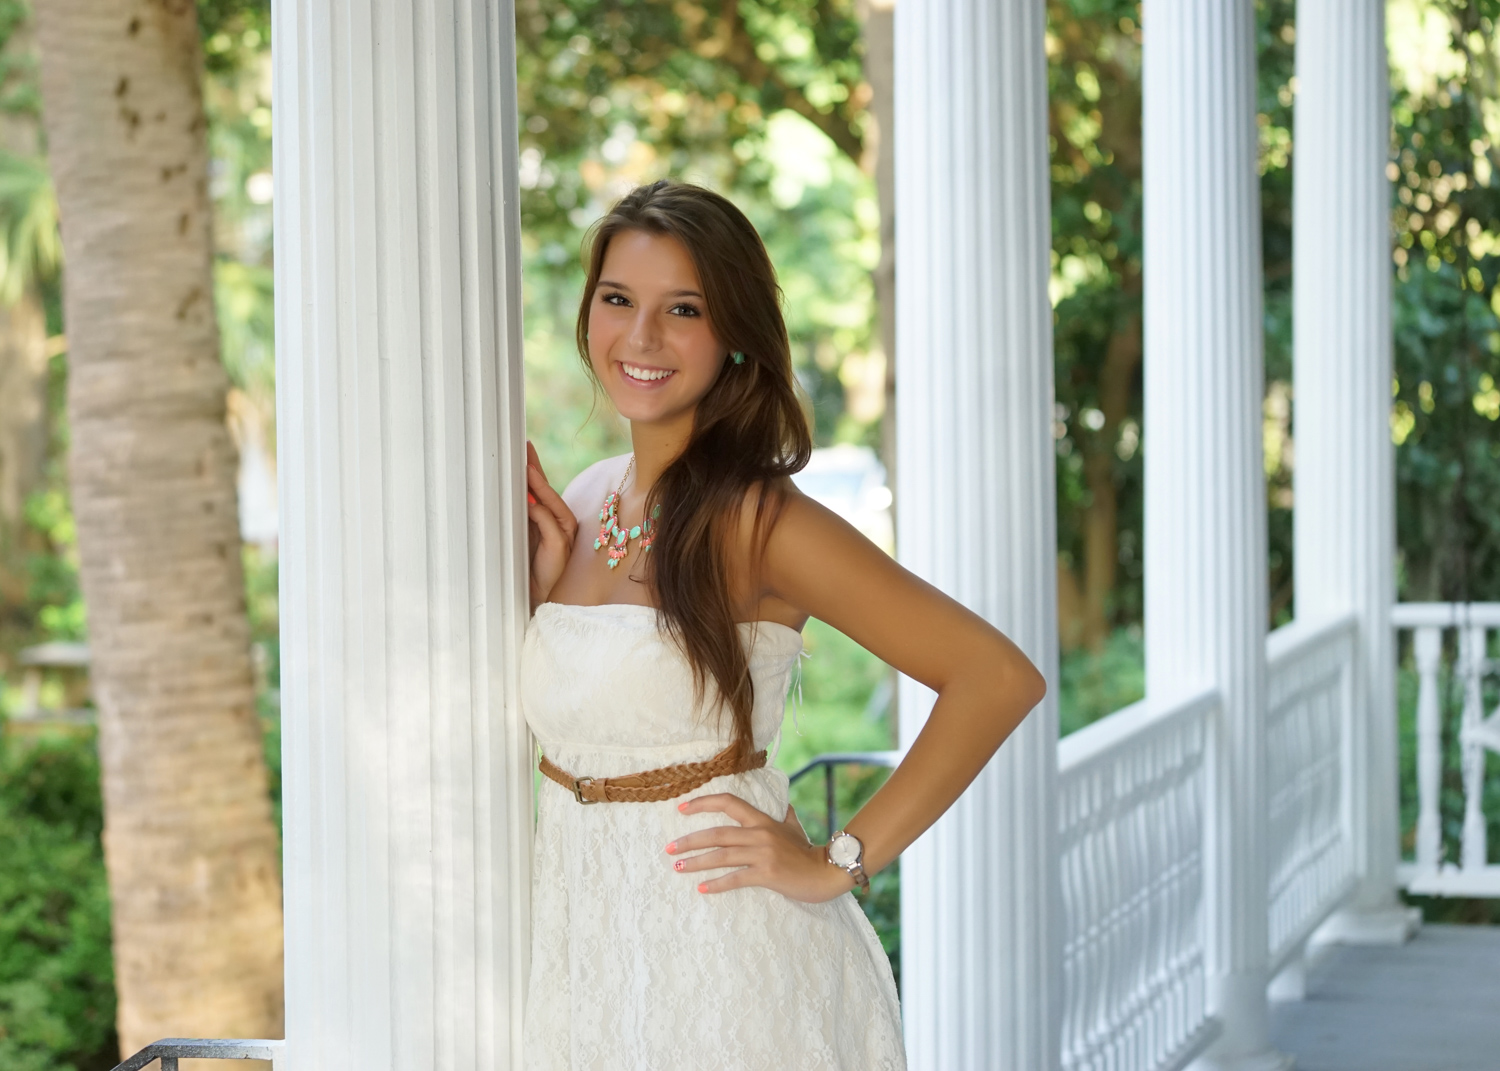 senior_portraits_beaufort-29.jpg